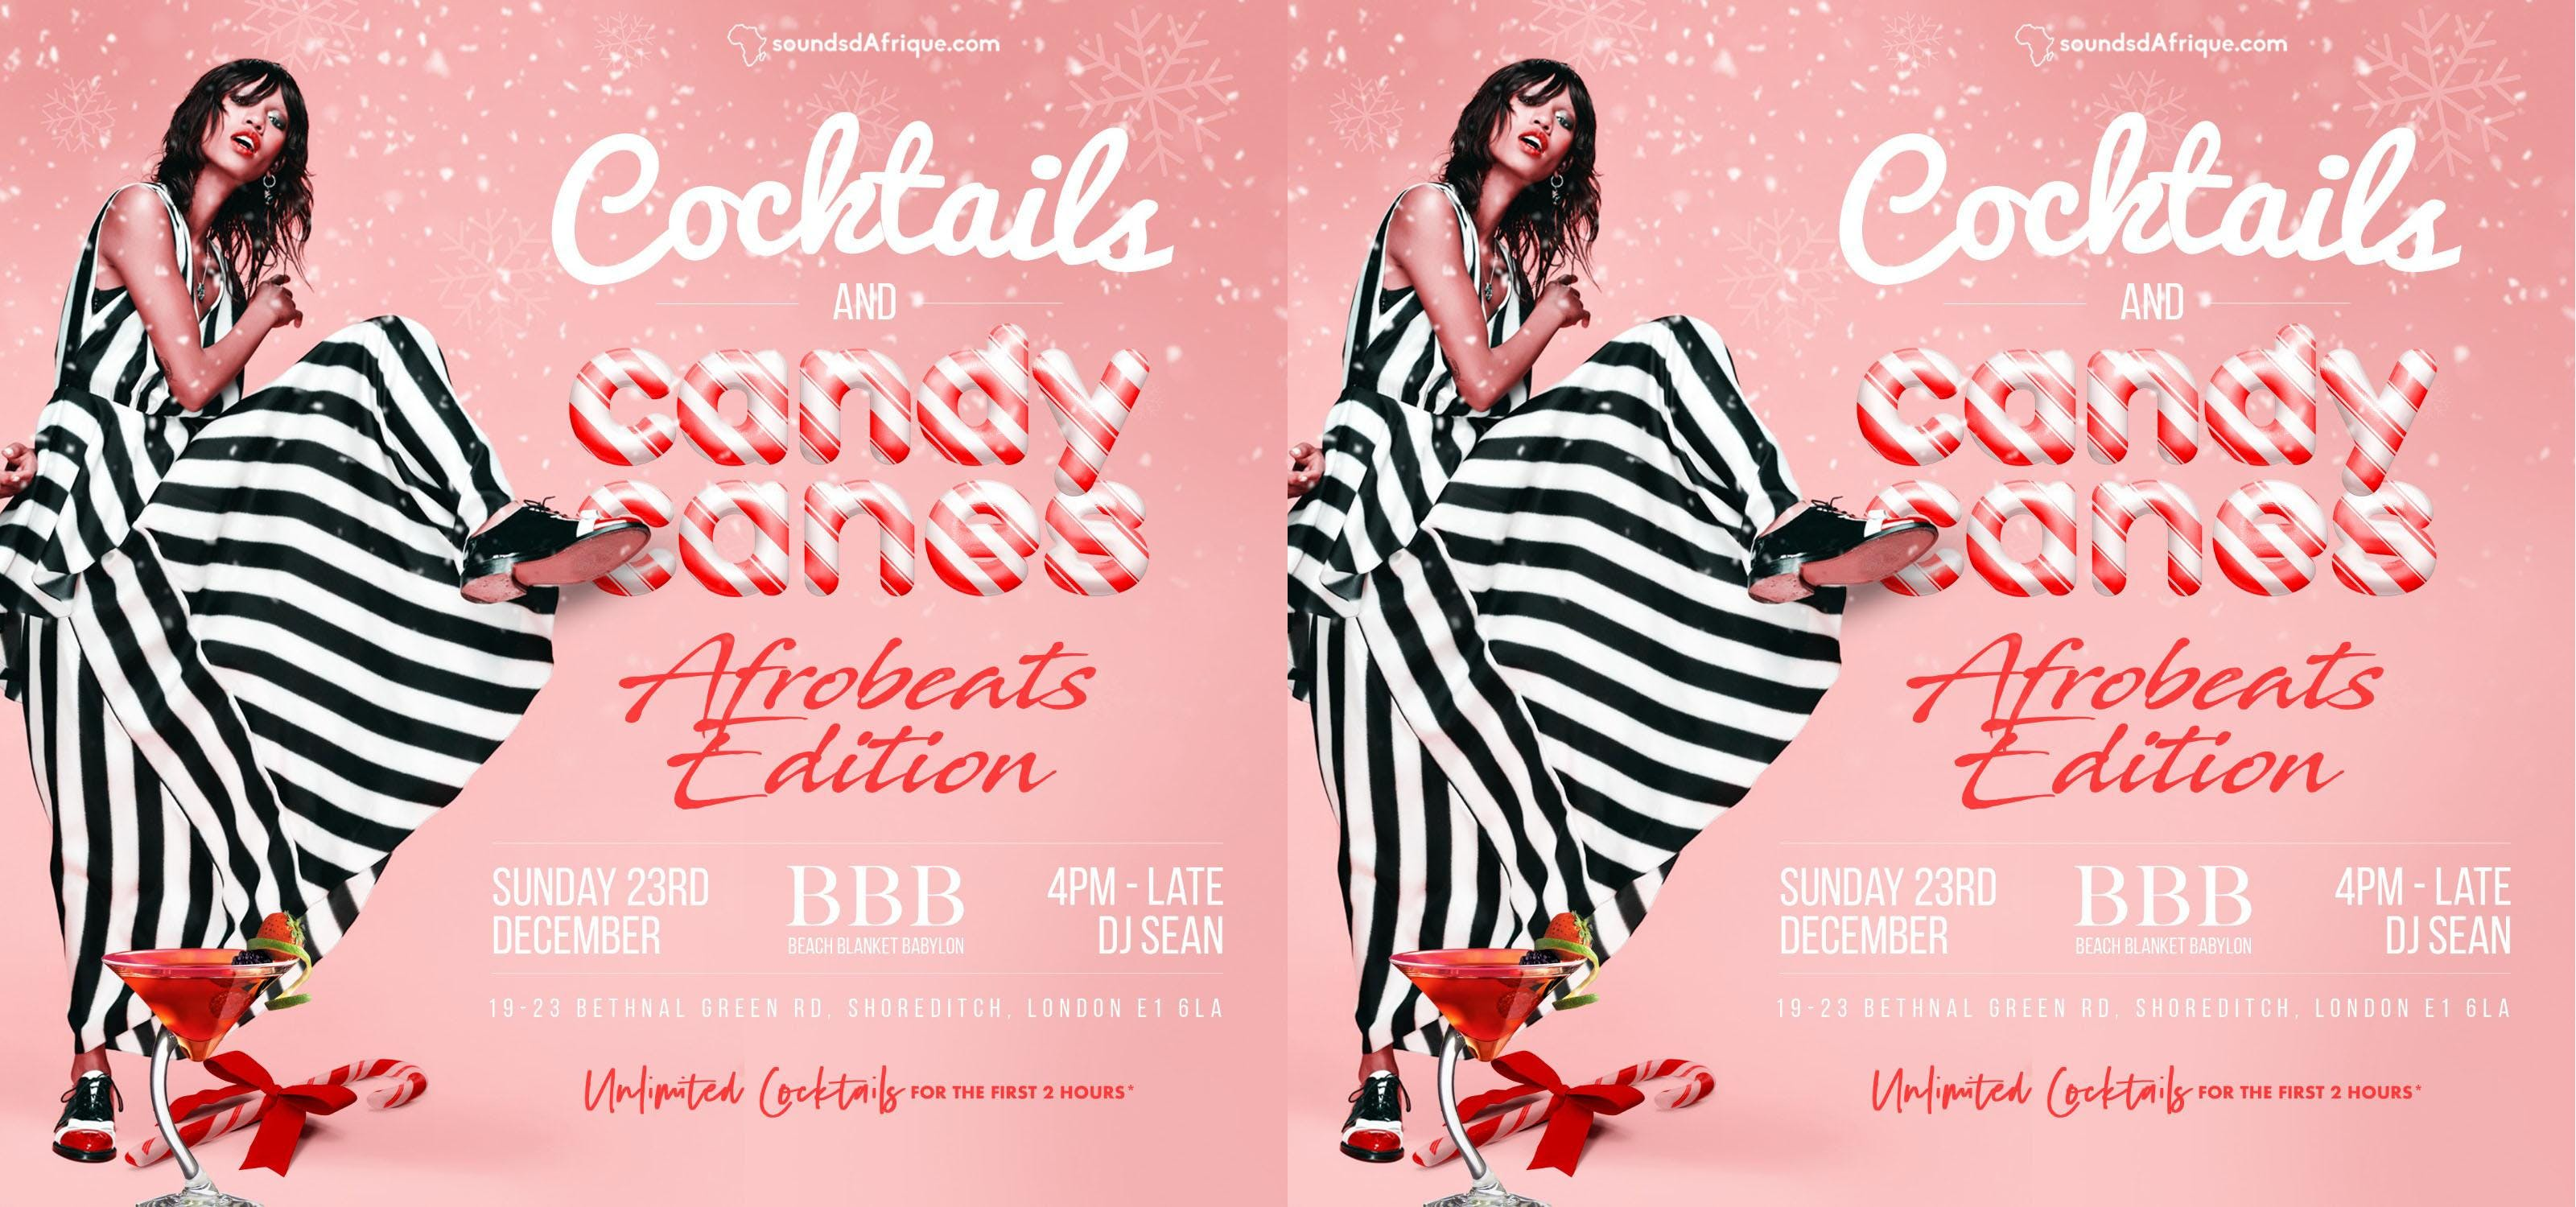 Cocktails & Candy Canes. Afrobeats Edition